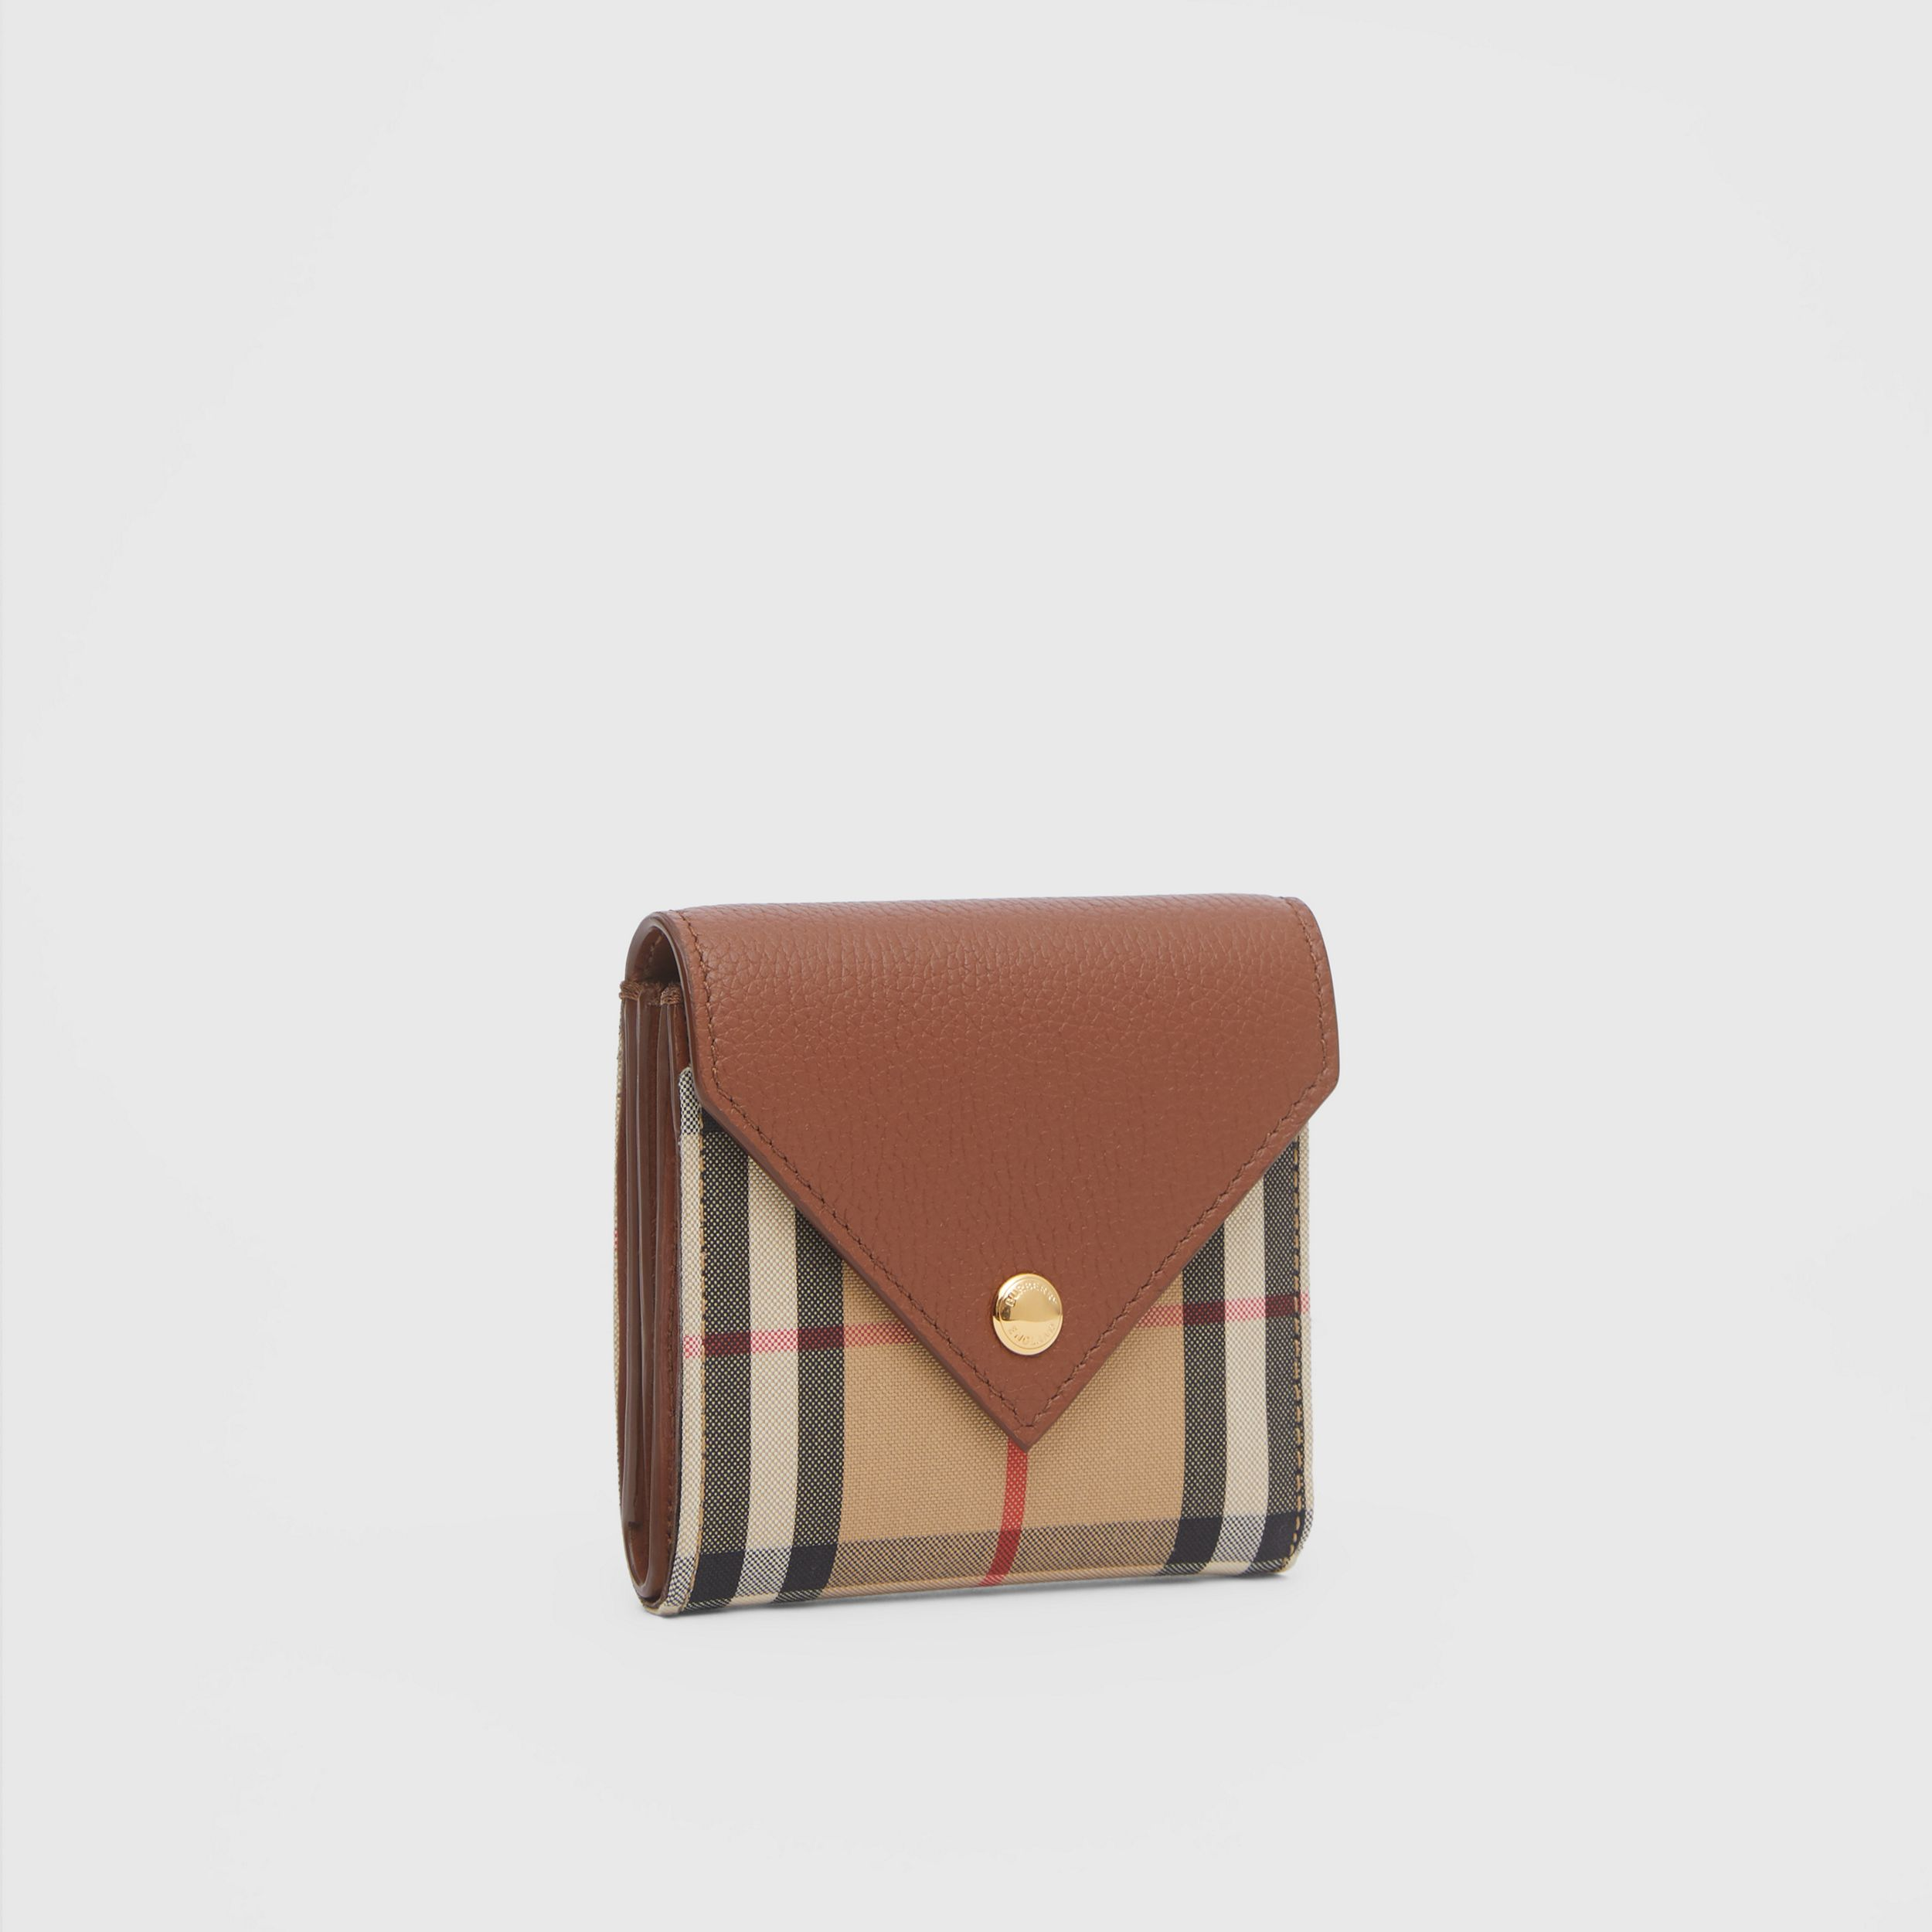 Vintage Check and Grainy Leather Folding Wallet in Tan - Women | Burberry - 4